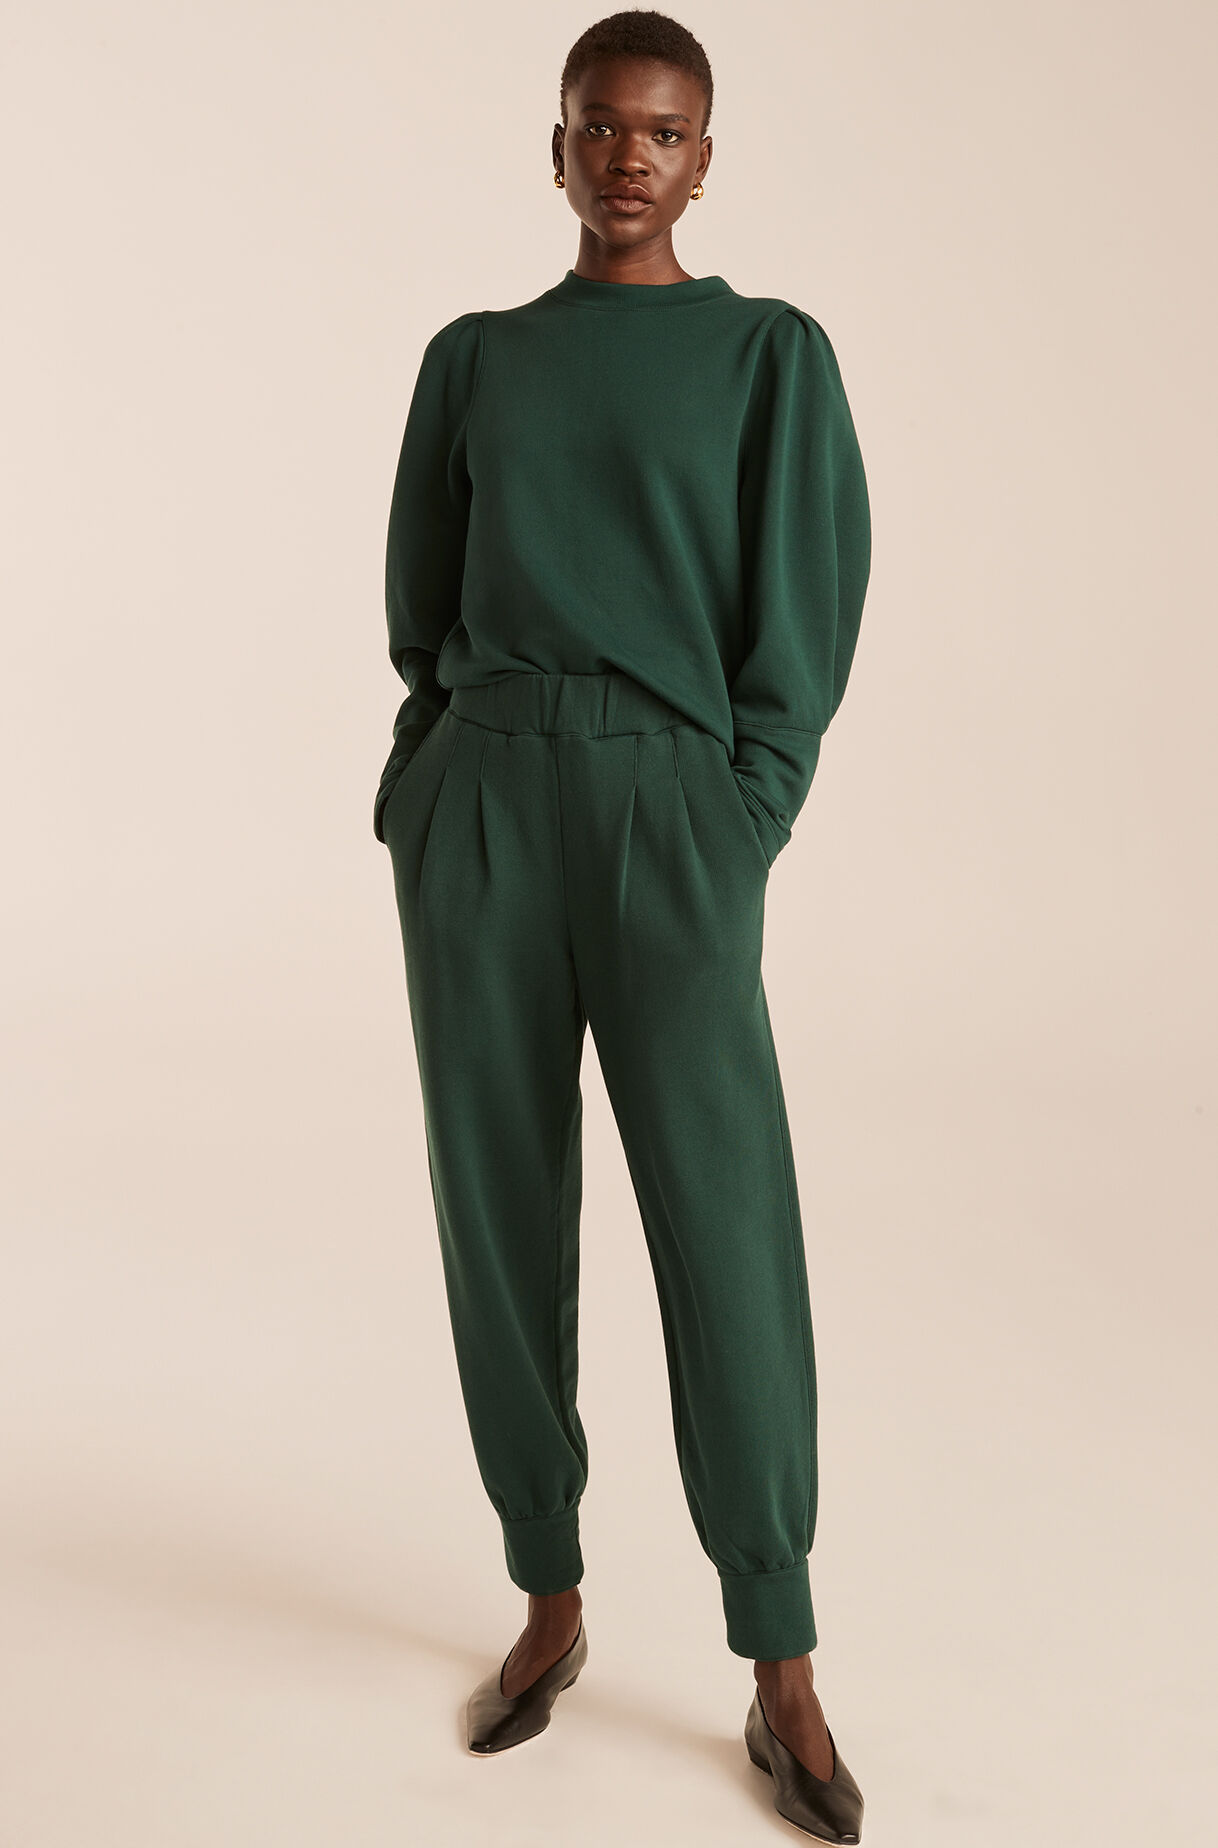 Knit Pull On Pant, , large